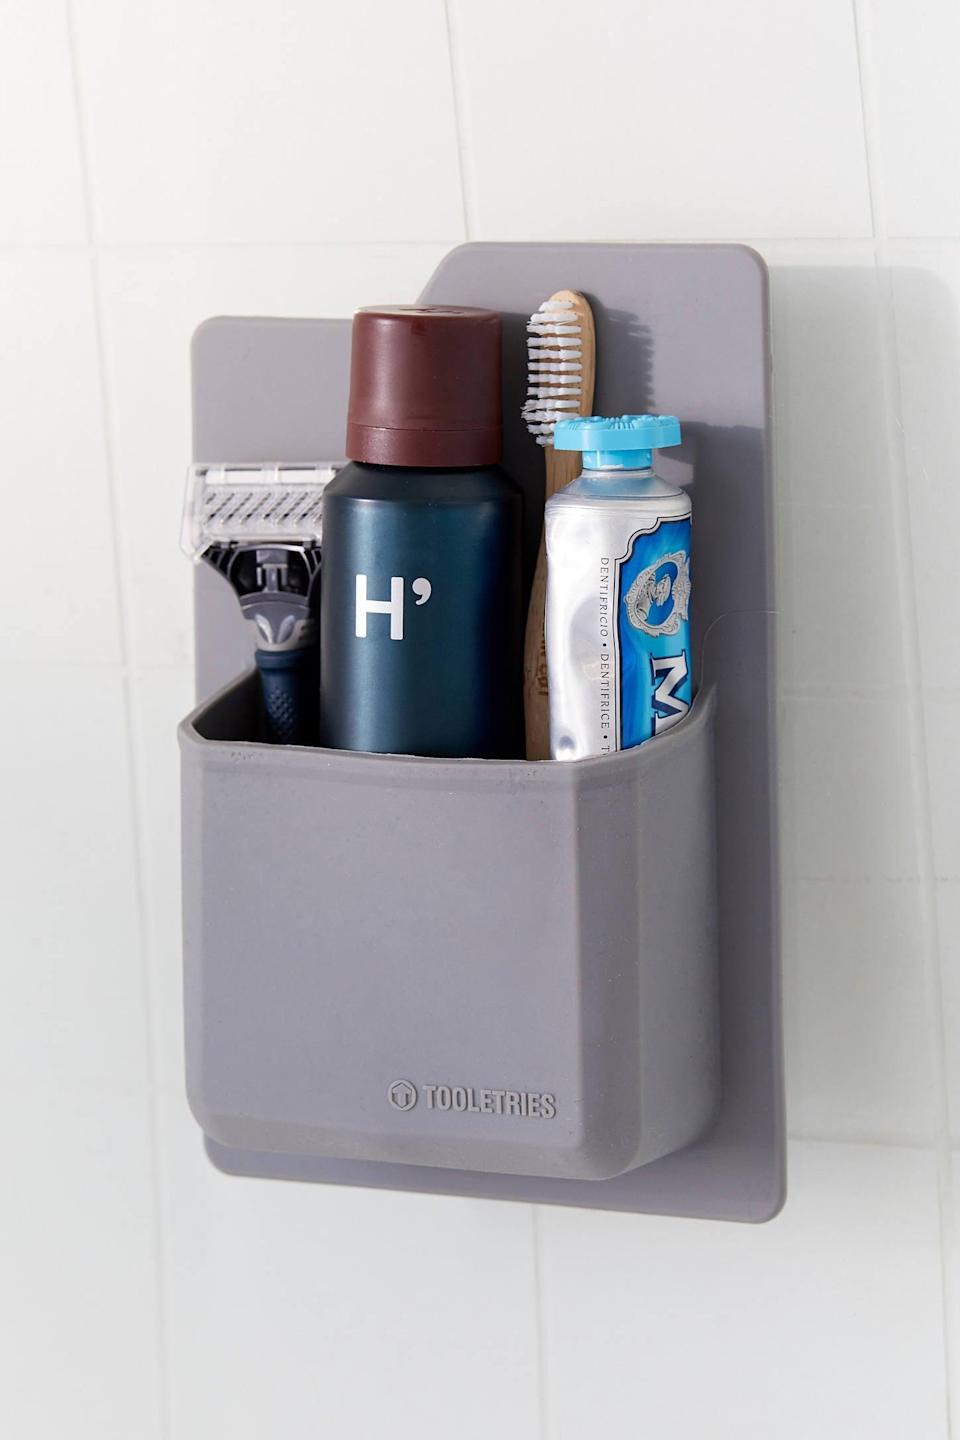 "<p>This <a href=""https://www.popsugar.com/buy/Tooletries-Toiletry-Wall-Organizer-551630?p_name=Tooletries%20Toiletry%20Wall%20Organizer&retailer=urbanoutfitters.com&pid=551630&price=20&evar1=casa%3Aus&evar9=47251564&evar98=https%3A%2F%2Fwww.popsugar.com%2Fhome%2Fphoto-gallery%2F47251564%2Fimage%2F47252508%2FTooletries-Toiletry-Wall-Organizer&list1=cleaning%2Corganization%2Cspring%20cleaning%2Csmall%20space%20living%2Cbathrooms%2Chome%20organization&prop13=mobile&pdata=1"" class=""link rapid-noclick-resp"" rel=""nofollow noopener"" target=""_blank"" data-ylk=""slk:Tooletries Toiletry Wall Organizer"">Tooletries Toiletry Wall Organizer</a> ($20) is so easy to install.</p>"